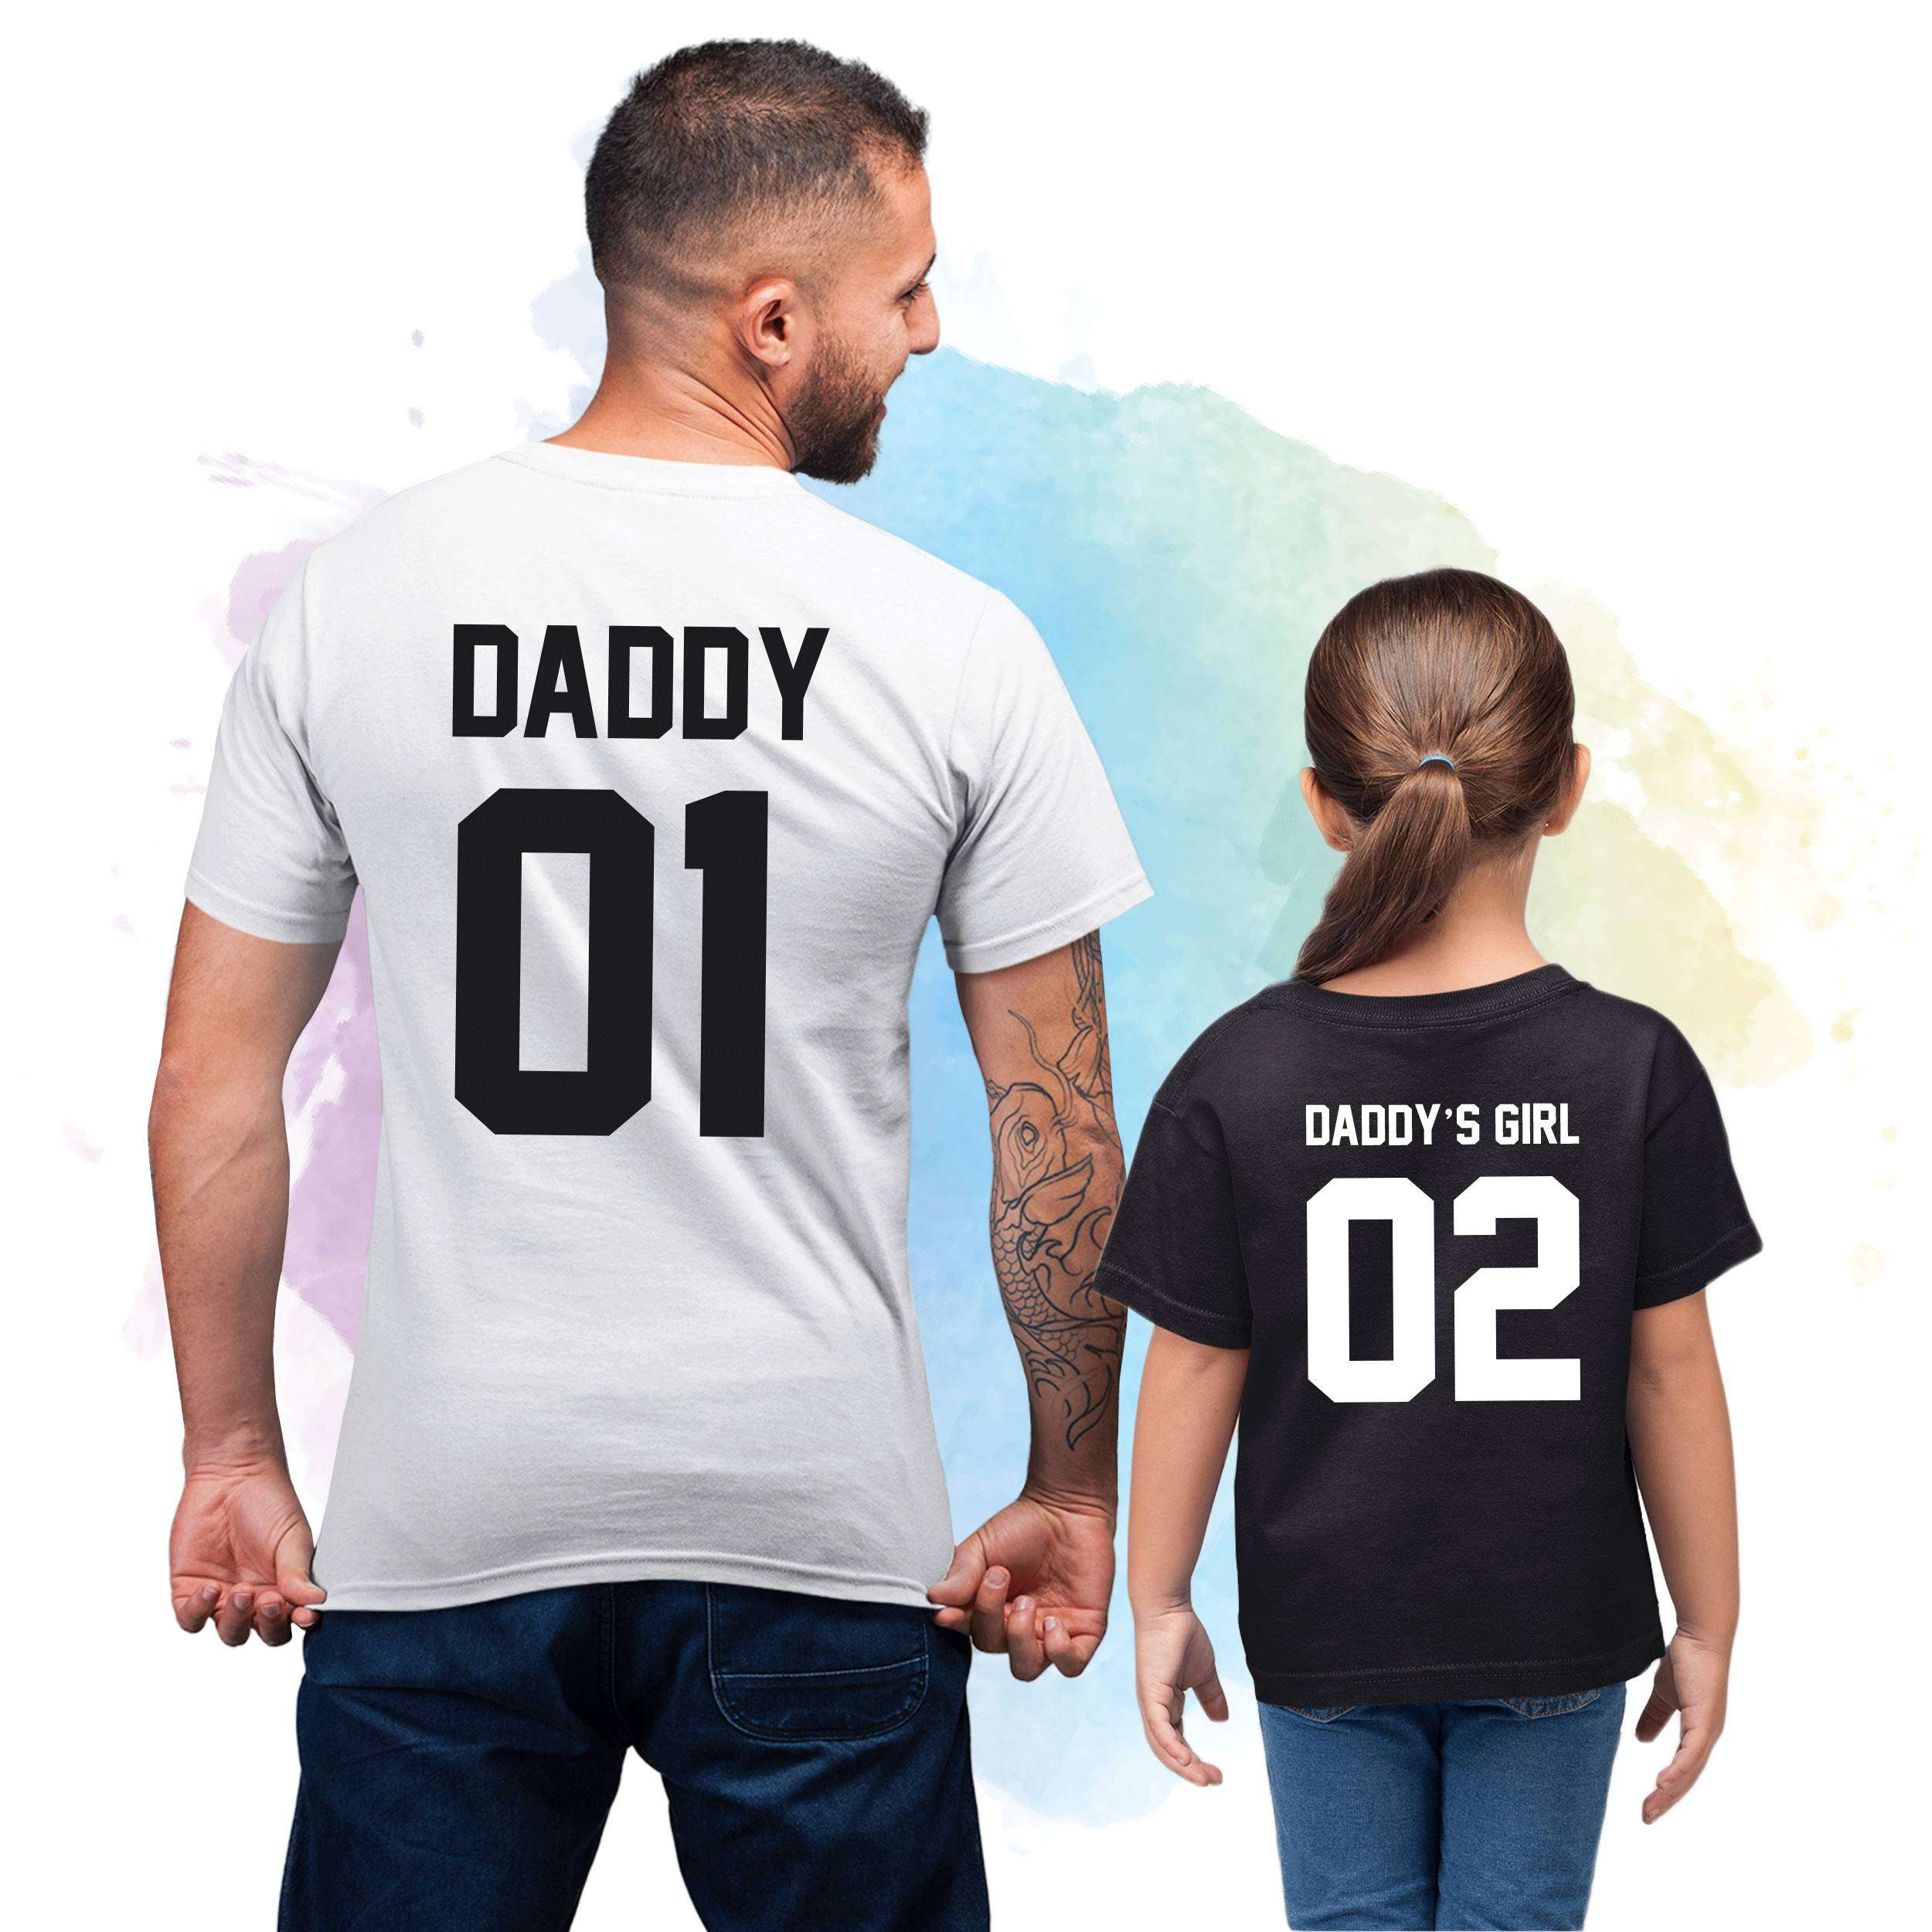 a10b5832 Daddy 01 Daddy's Girl 02, Father & Daughter Shirts - Fabconic